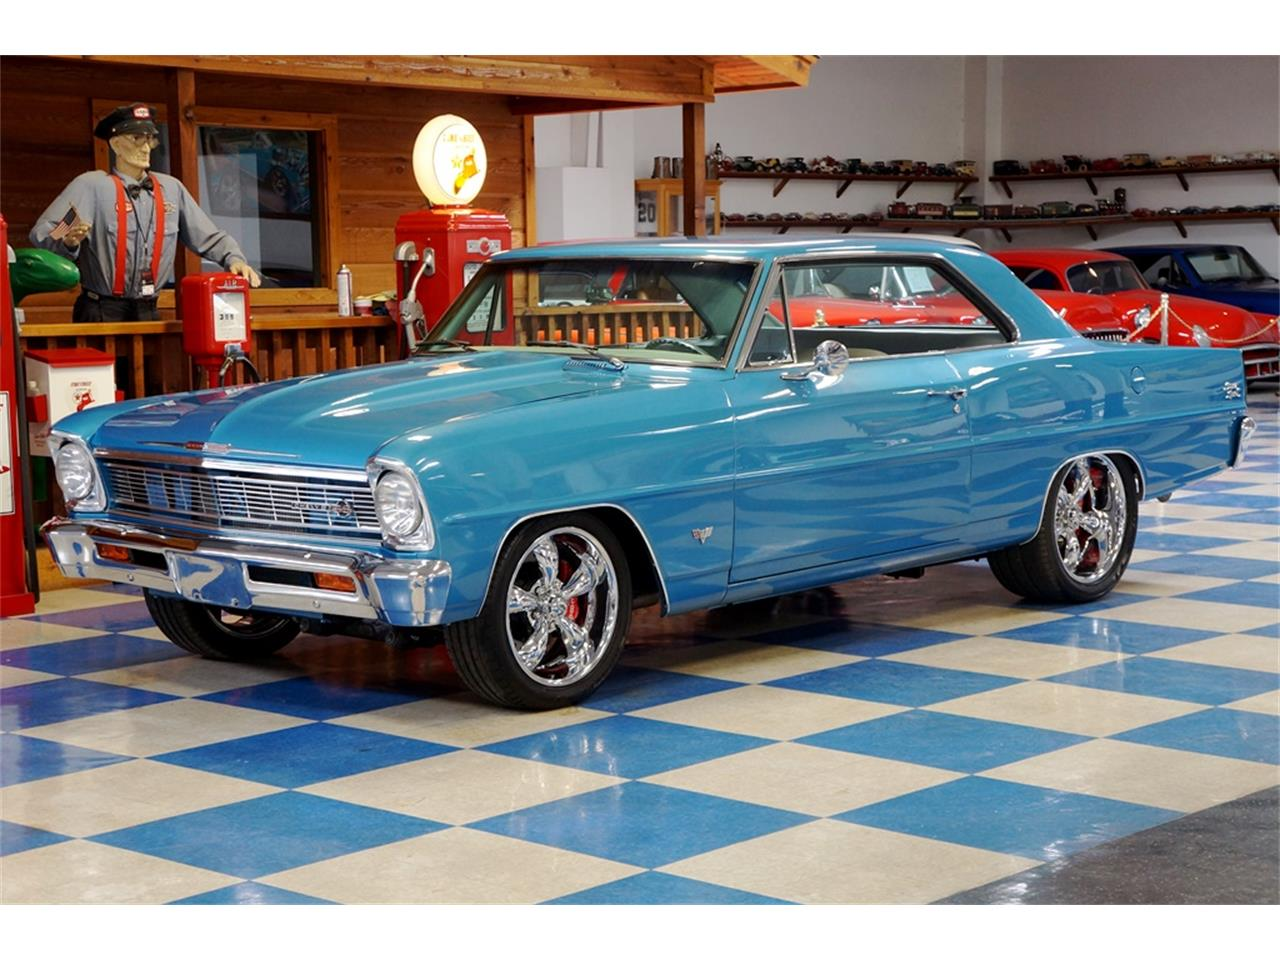 Large Picture of 1966 Chevrolet Nova located in Texas - $64,900.00 Offered by A&E Classic Cars - PWOL